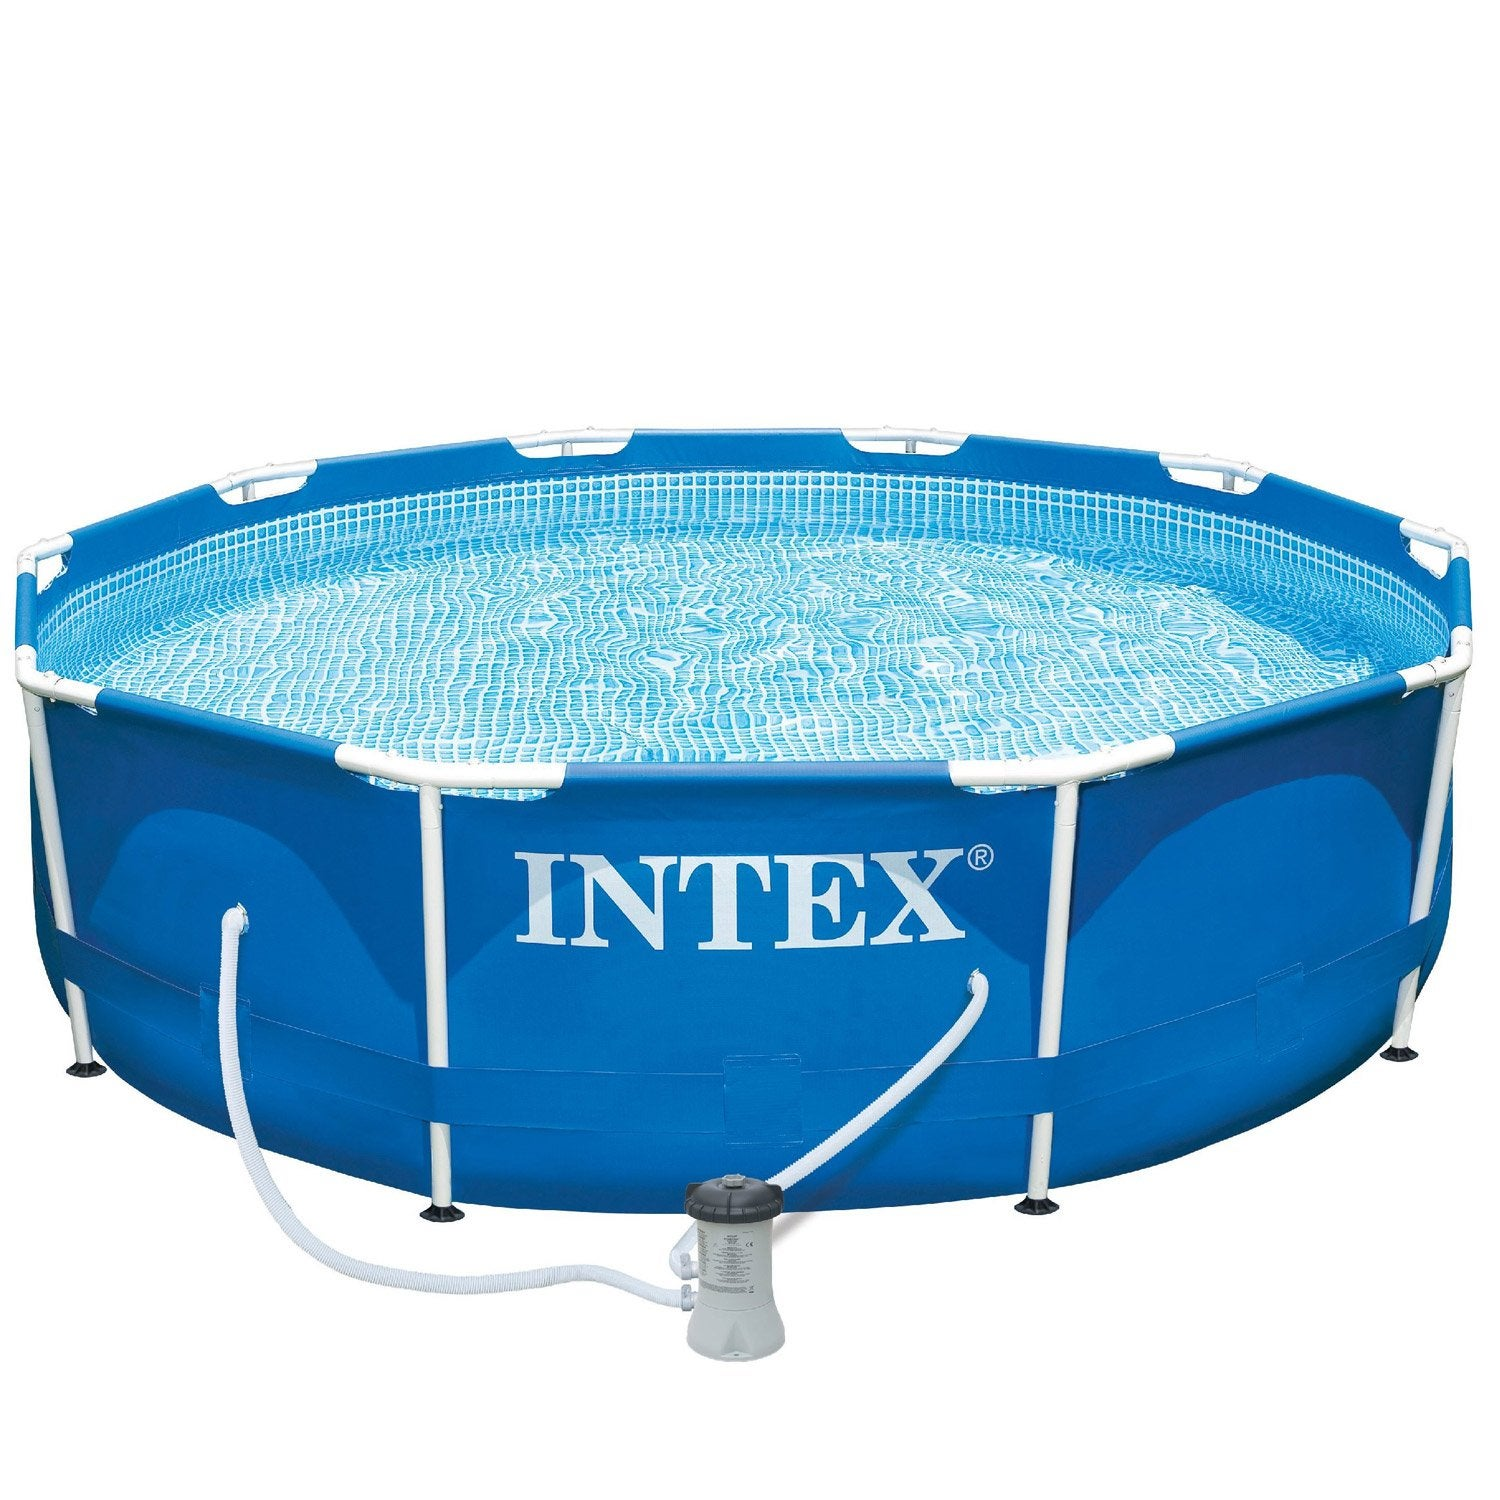 Piscine hors sol autoportante tubulaire metal frame intex for Bache piscine intex 3 05